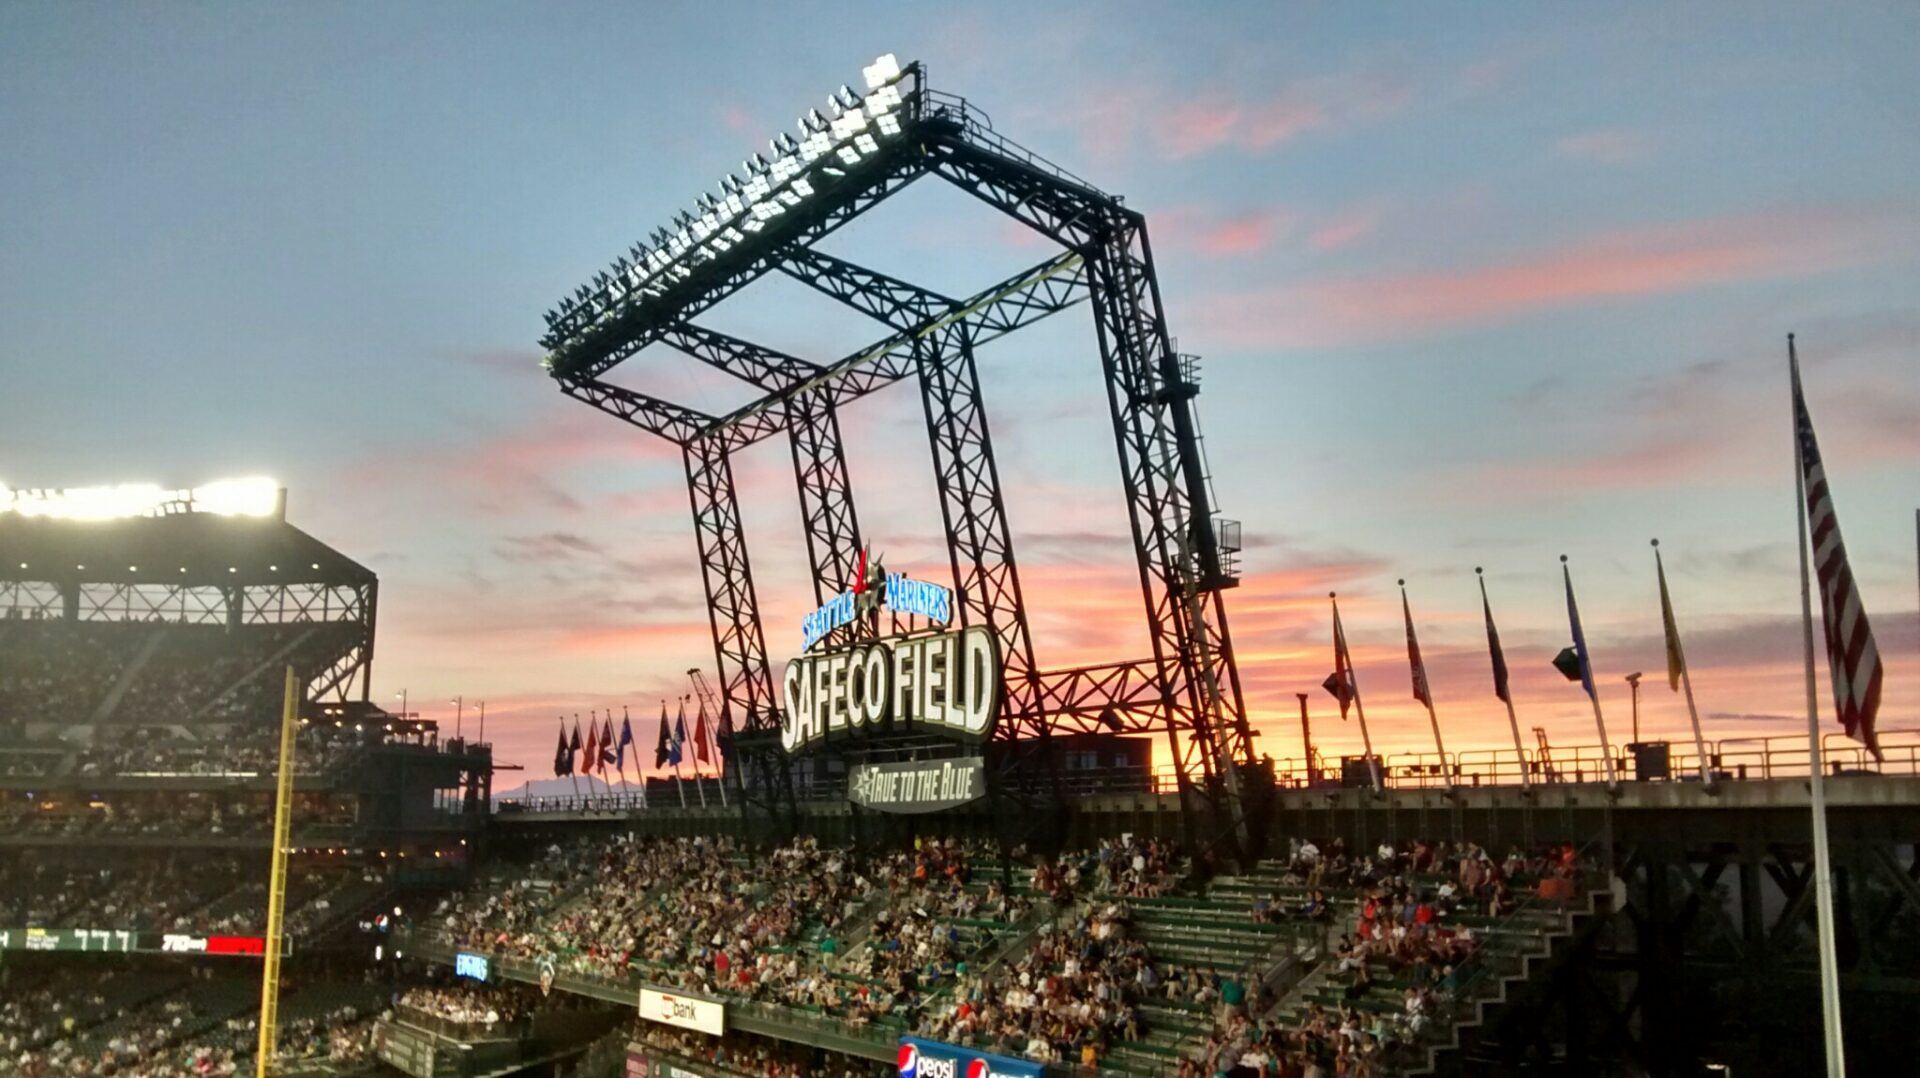 Safeco Field in Seattle. The sun is setting and the roof is open. The lights have just come on. There are fans and flags and a steel structure holding the lights.